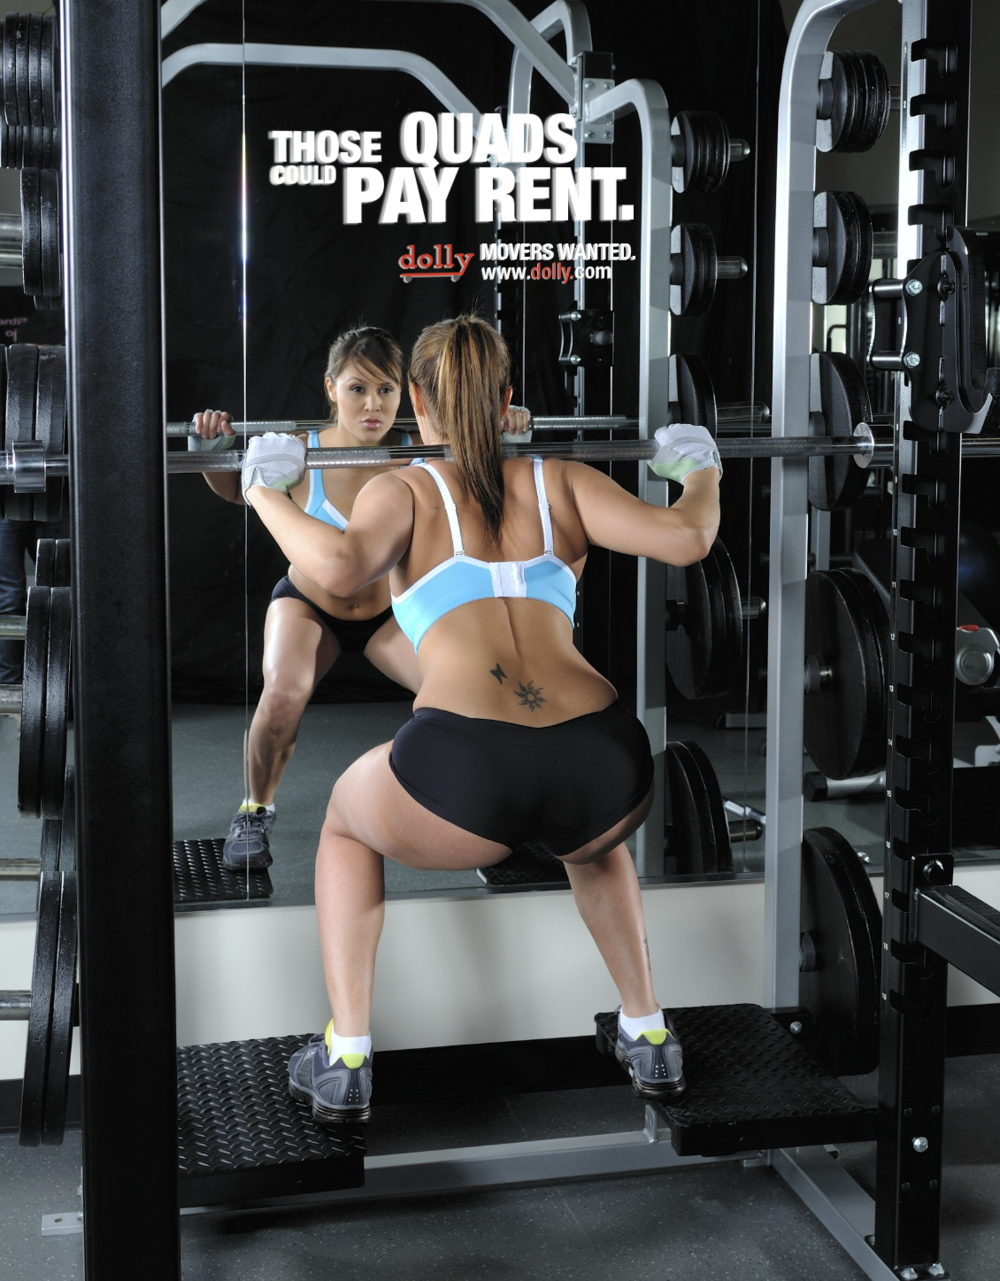 Ads on mirrors - because who doesn't like checking themselves out at the gym?